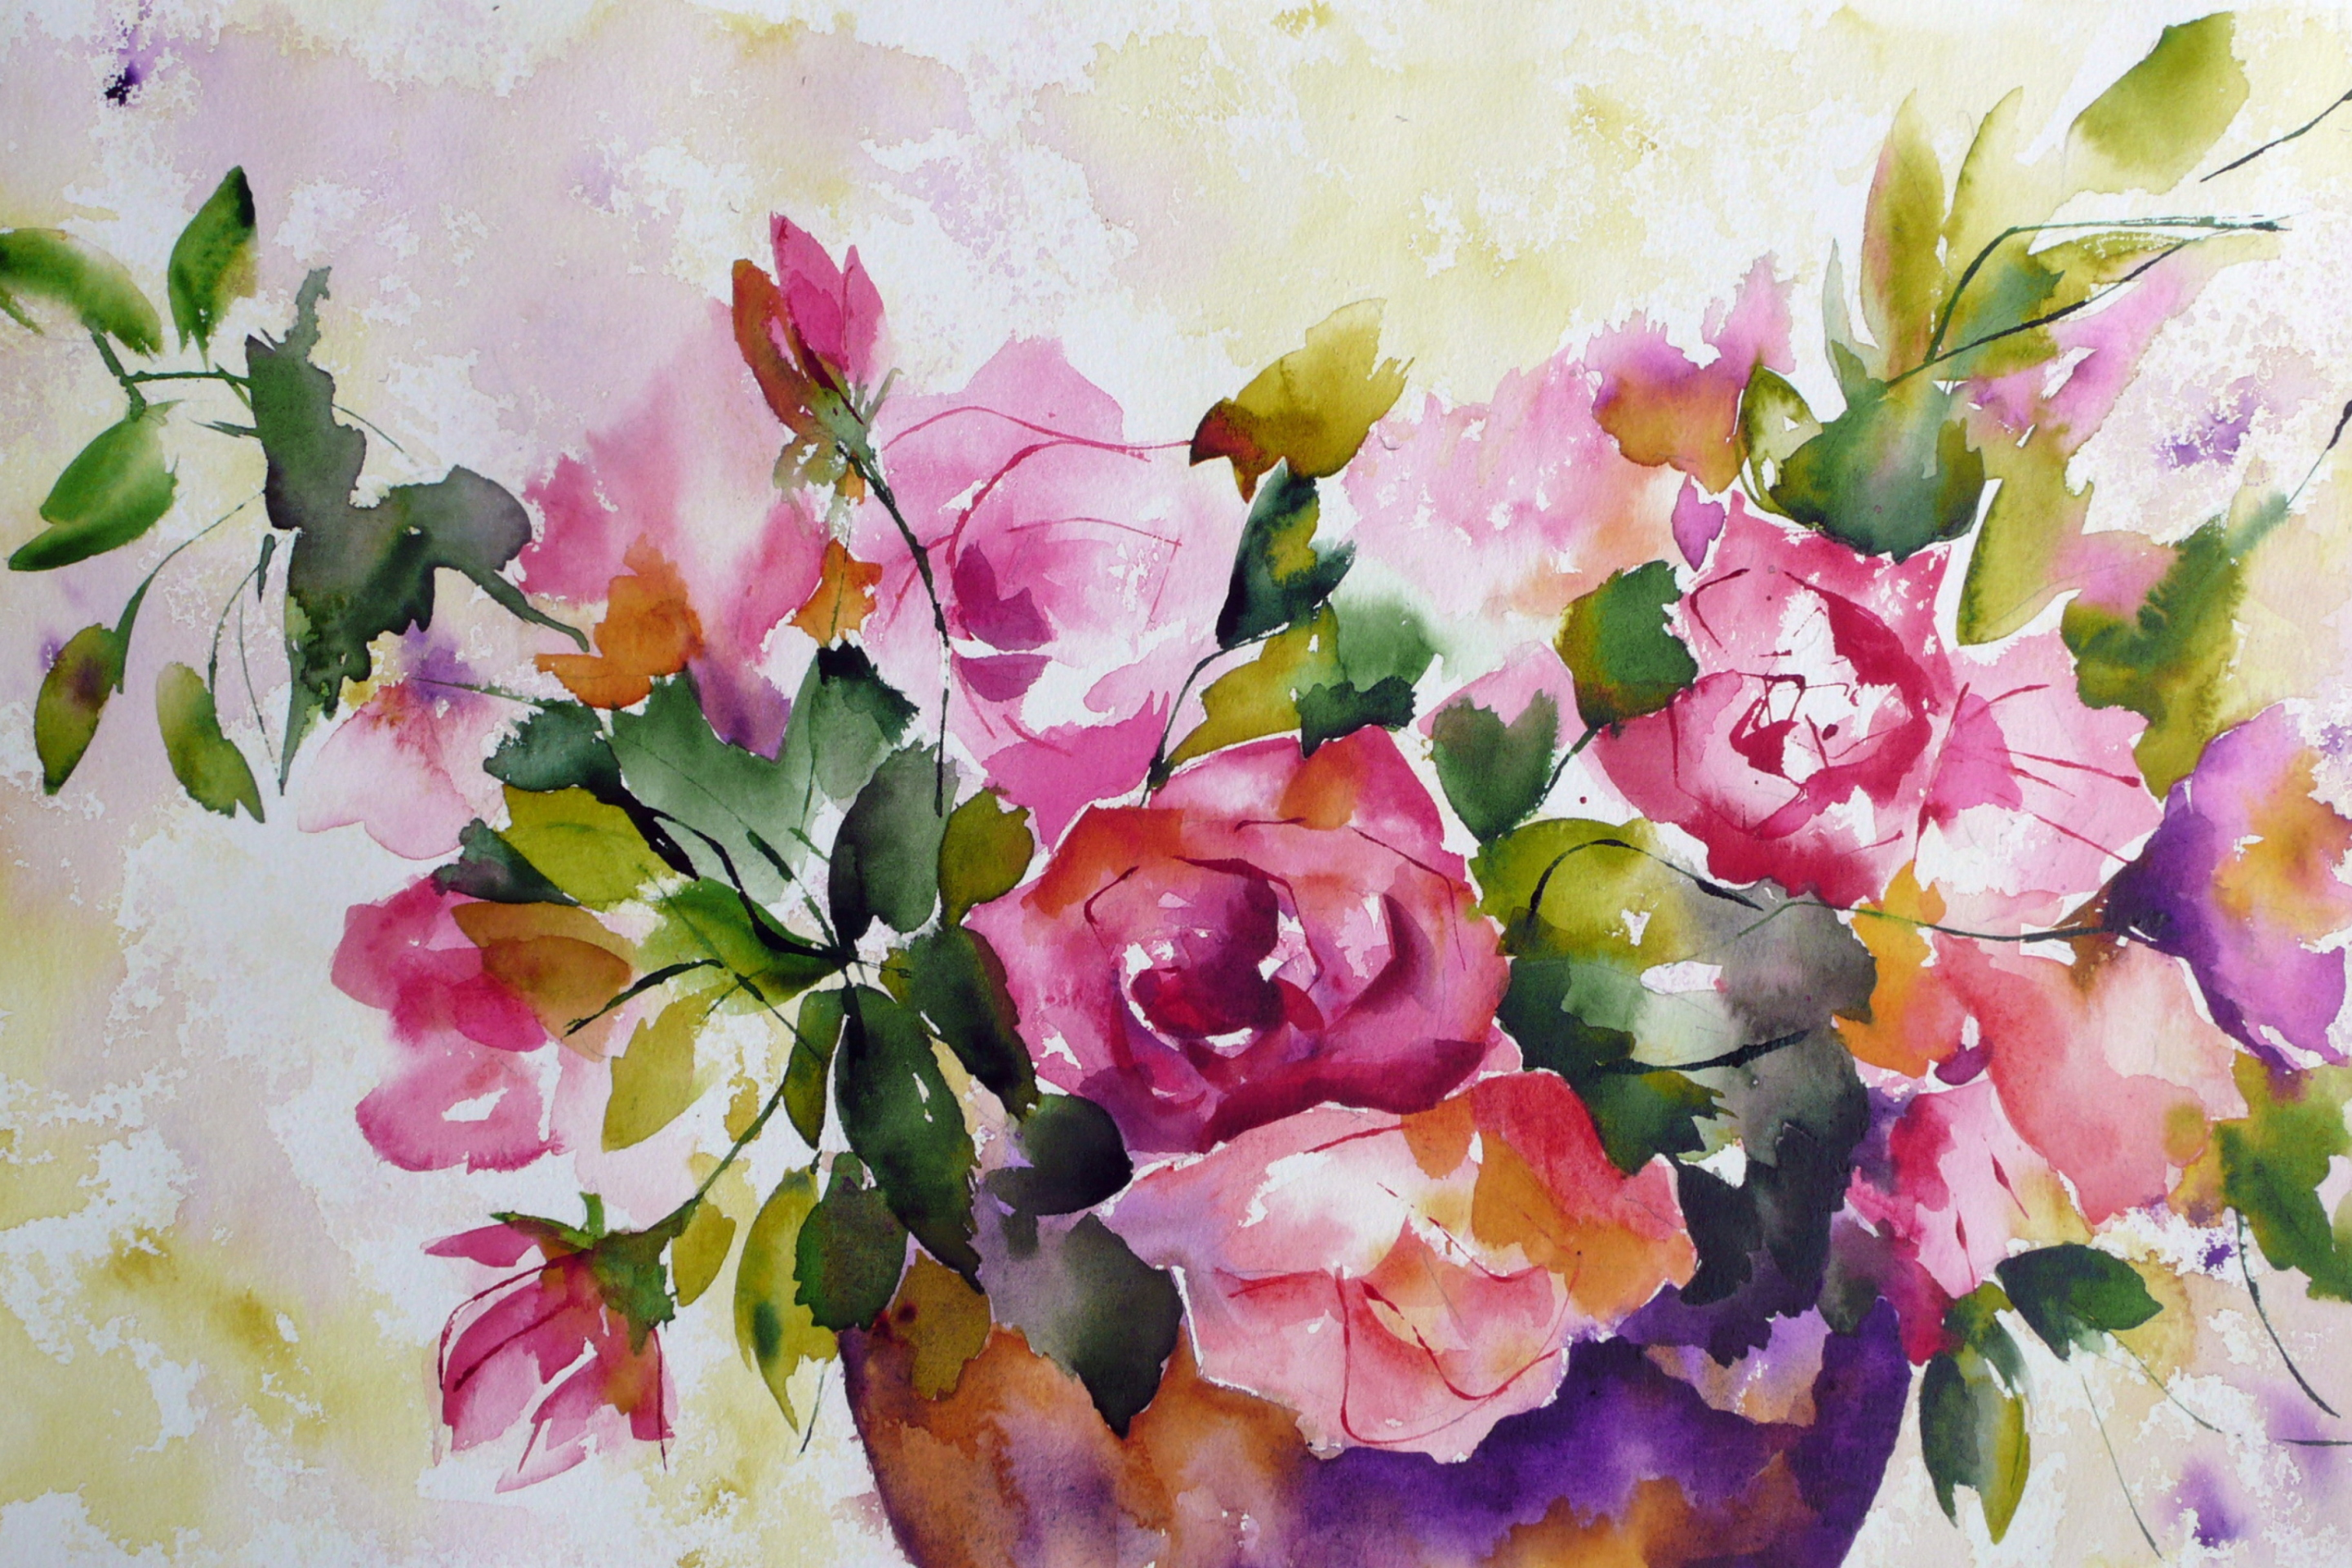 watercolor paintings images - HD2880×1920